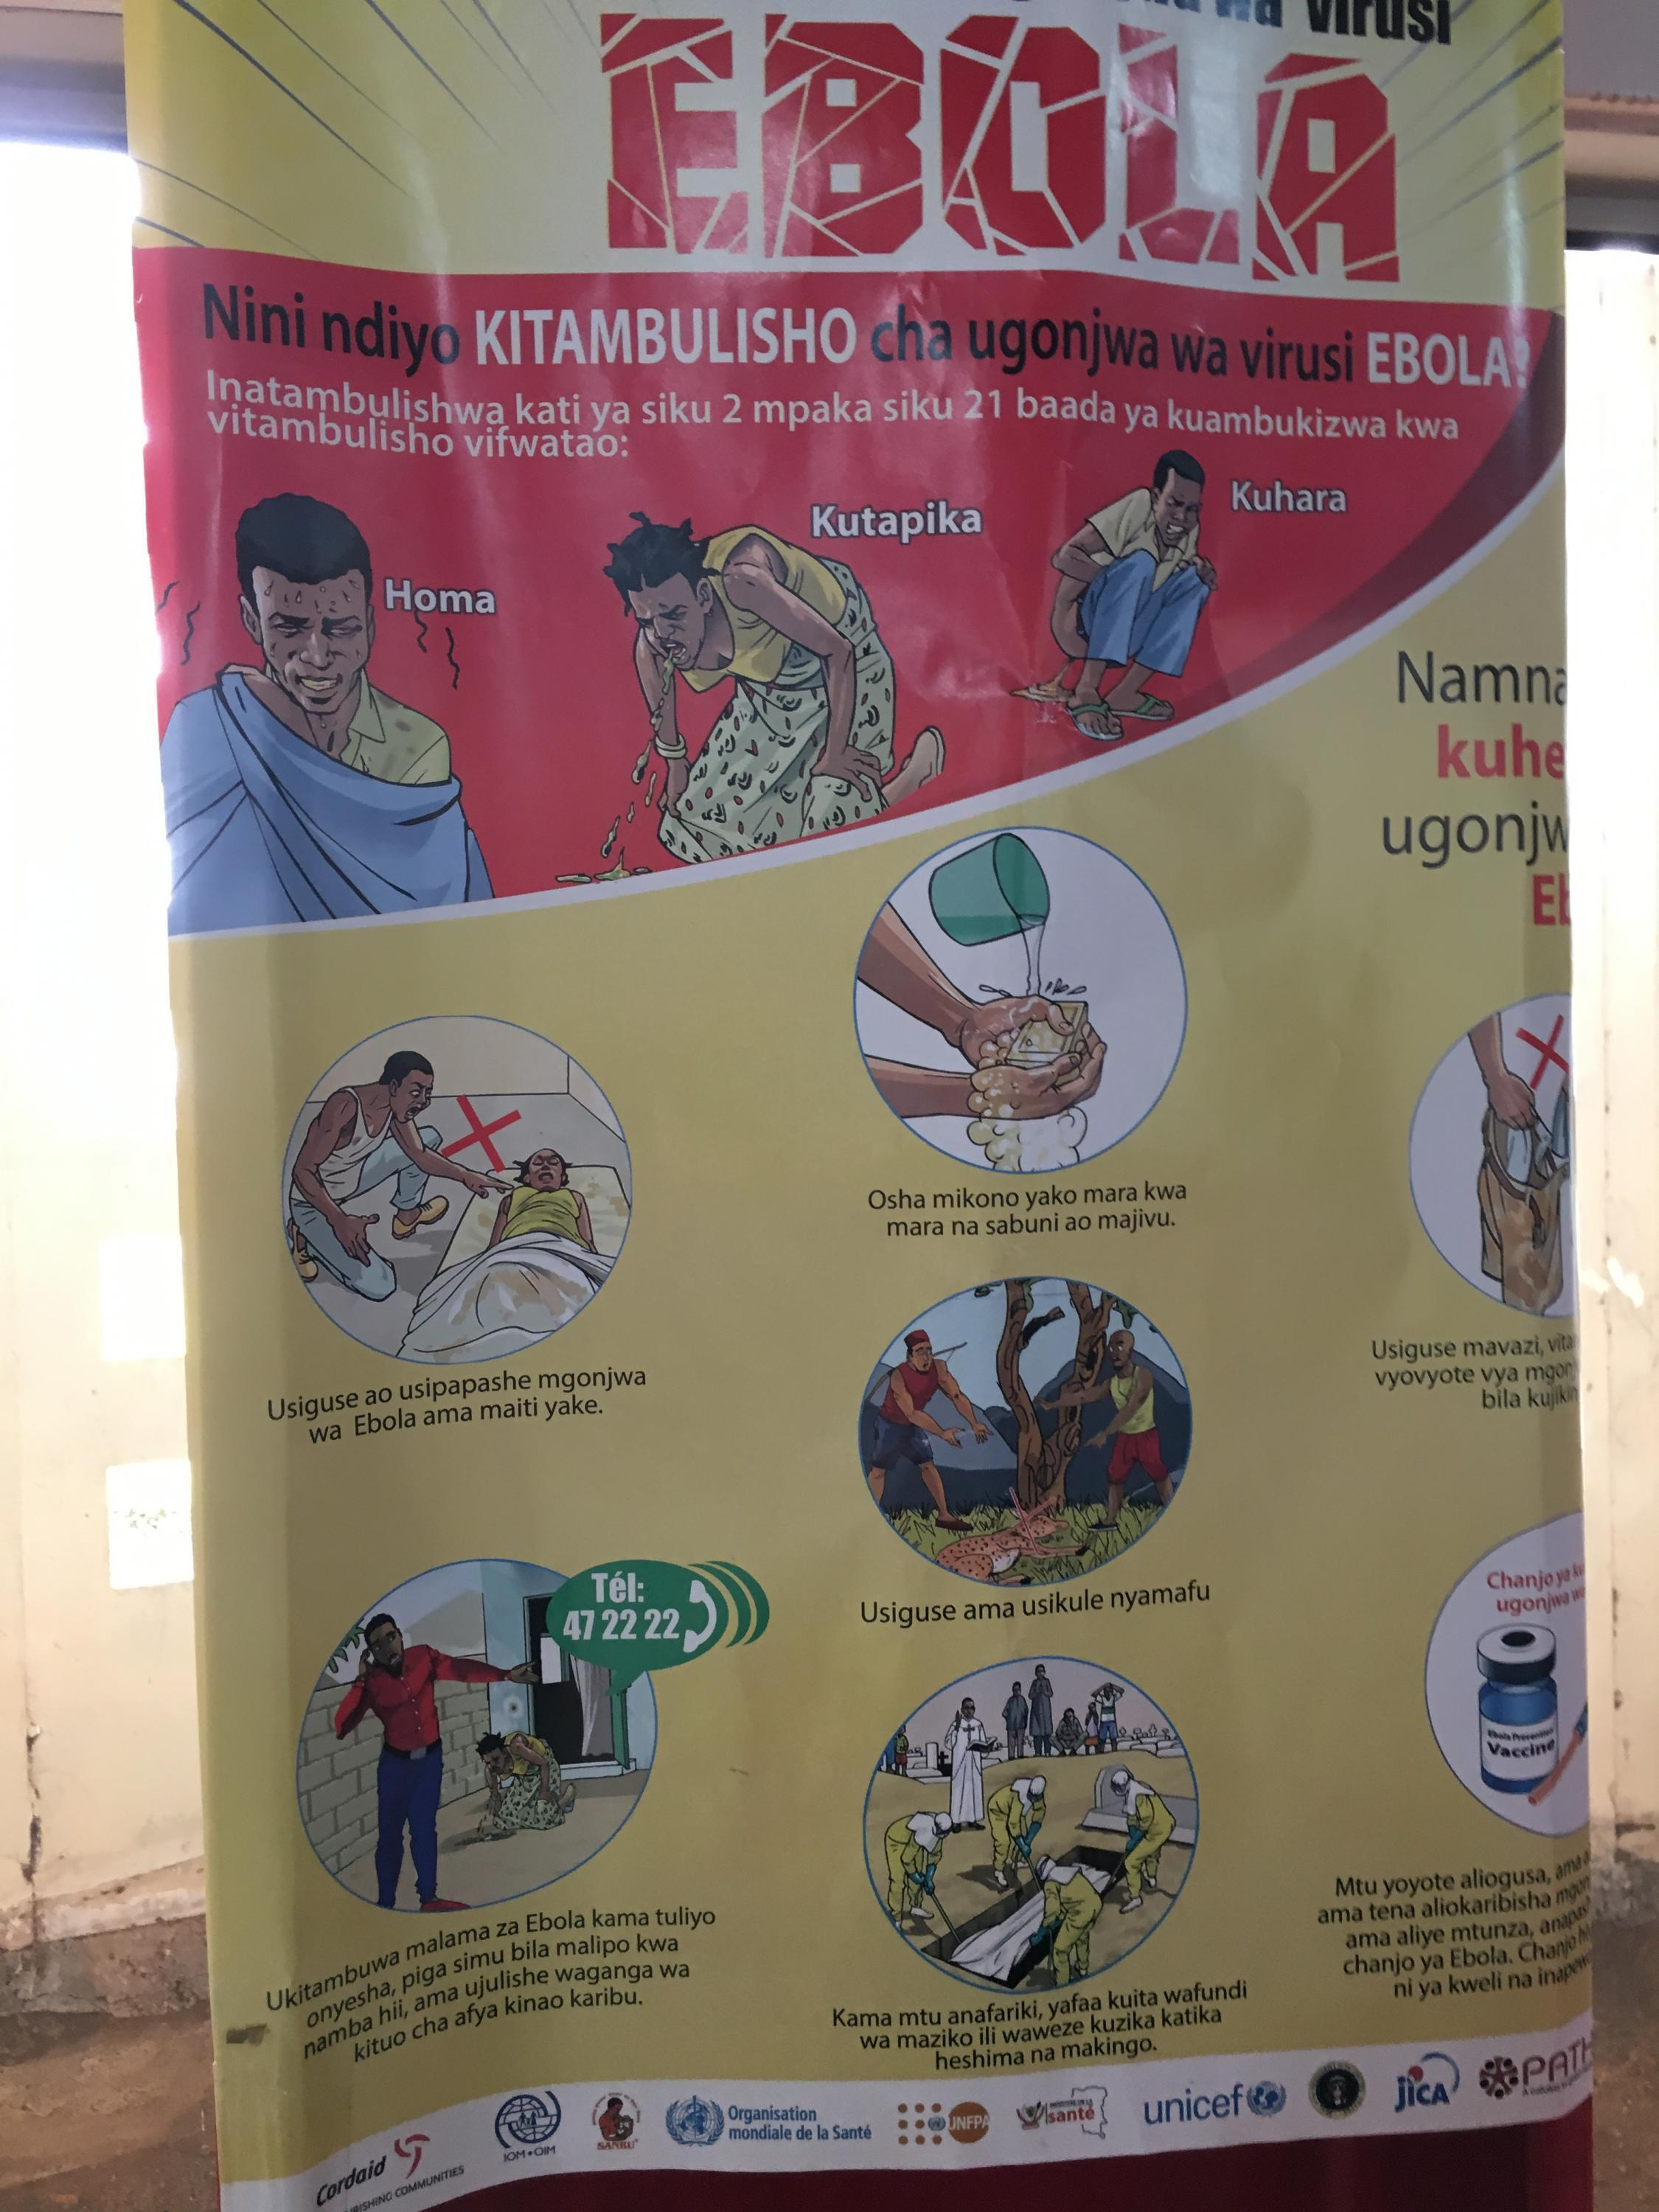 One of the many red-and-yellow Ebola posters in Kiswahili thoughout North Kivu, DRC